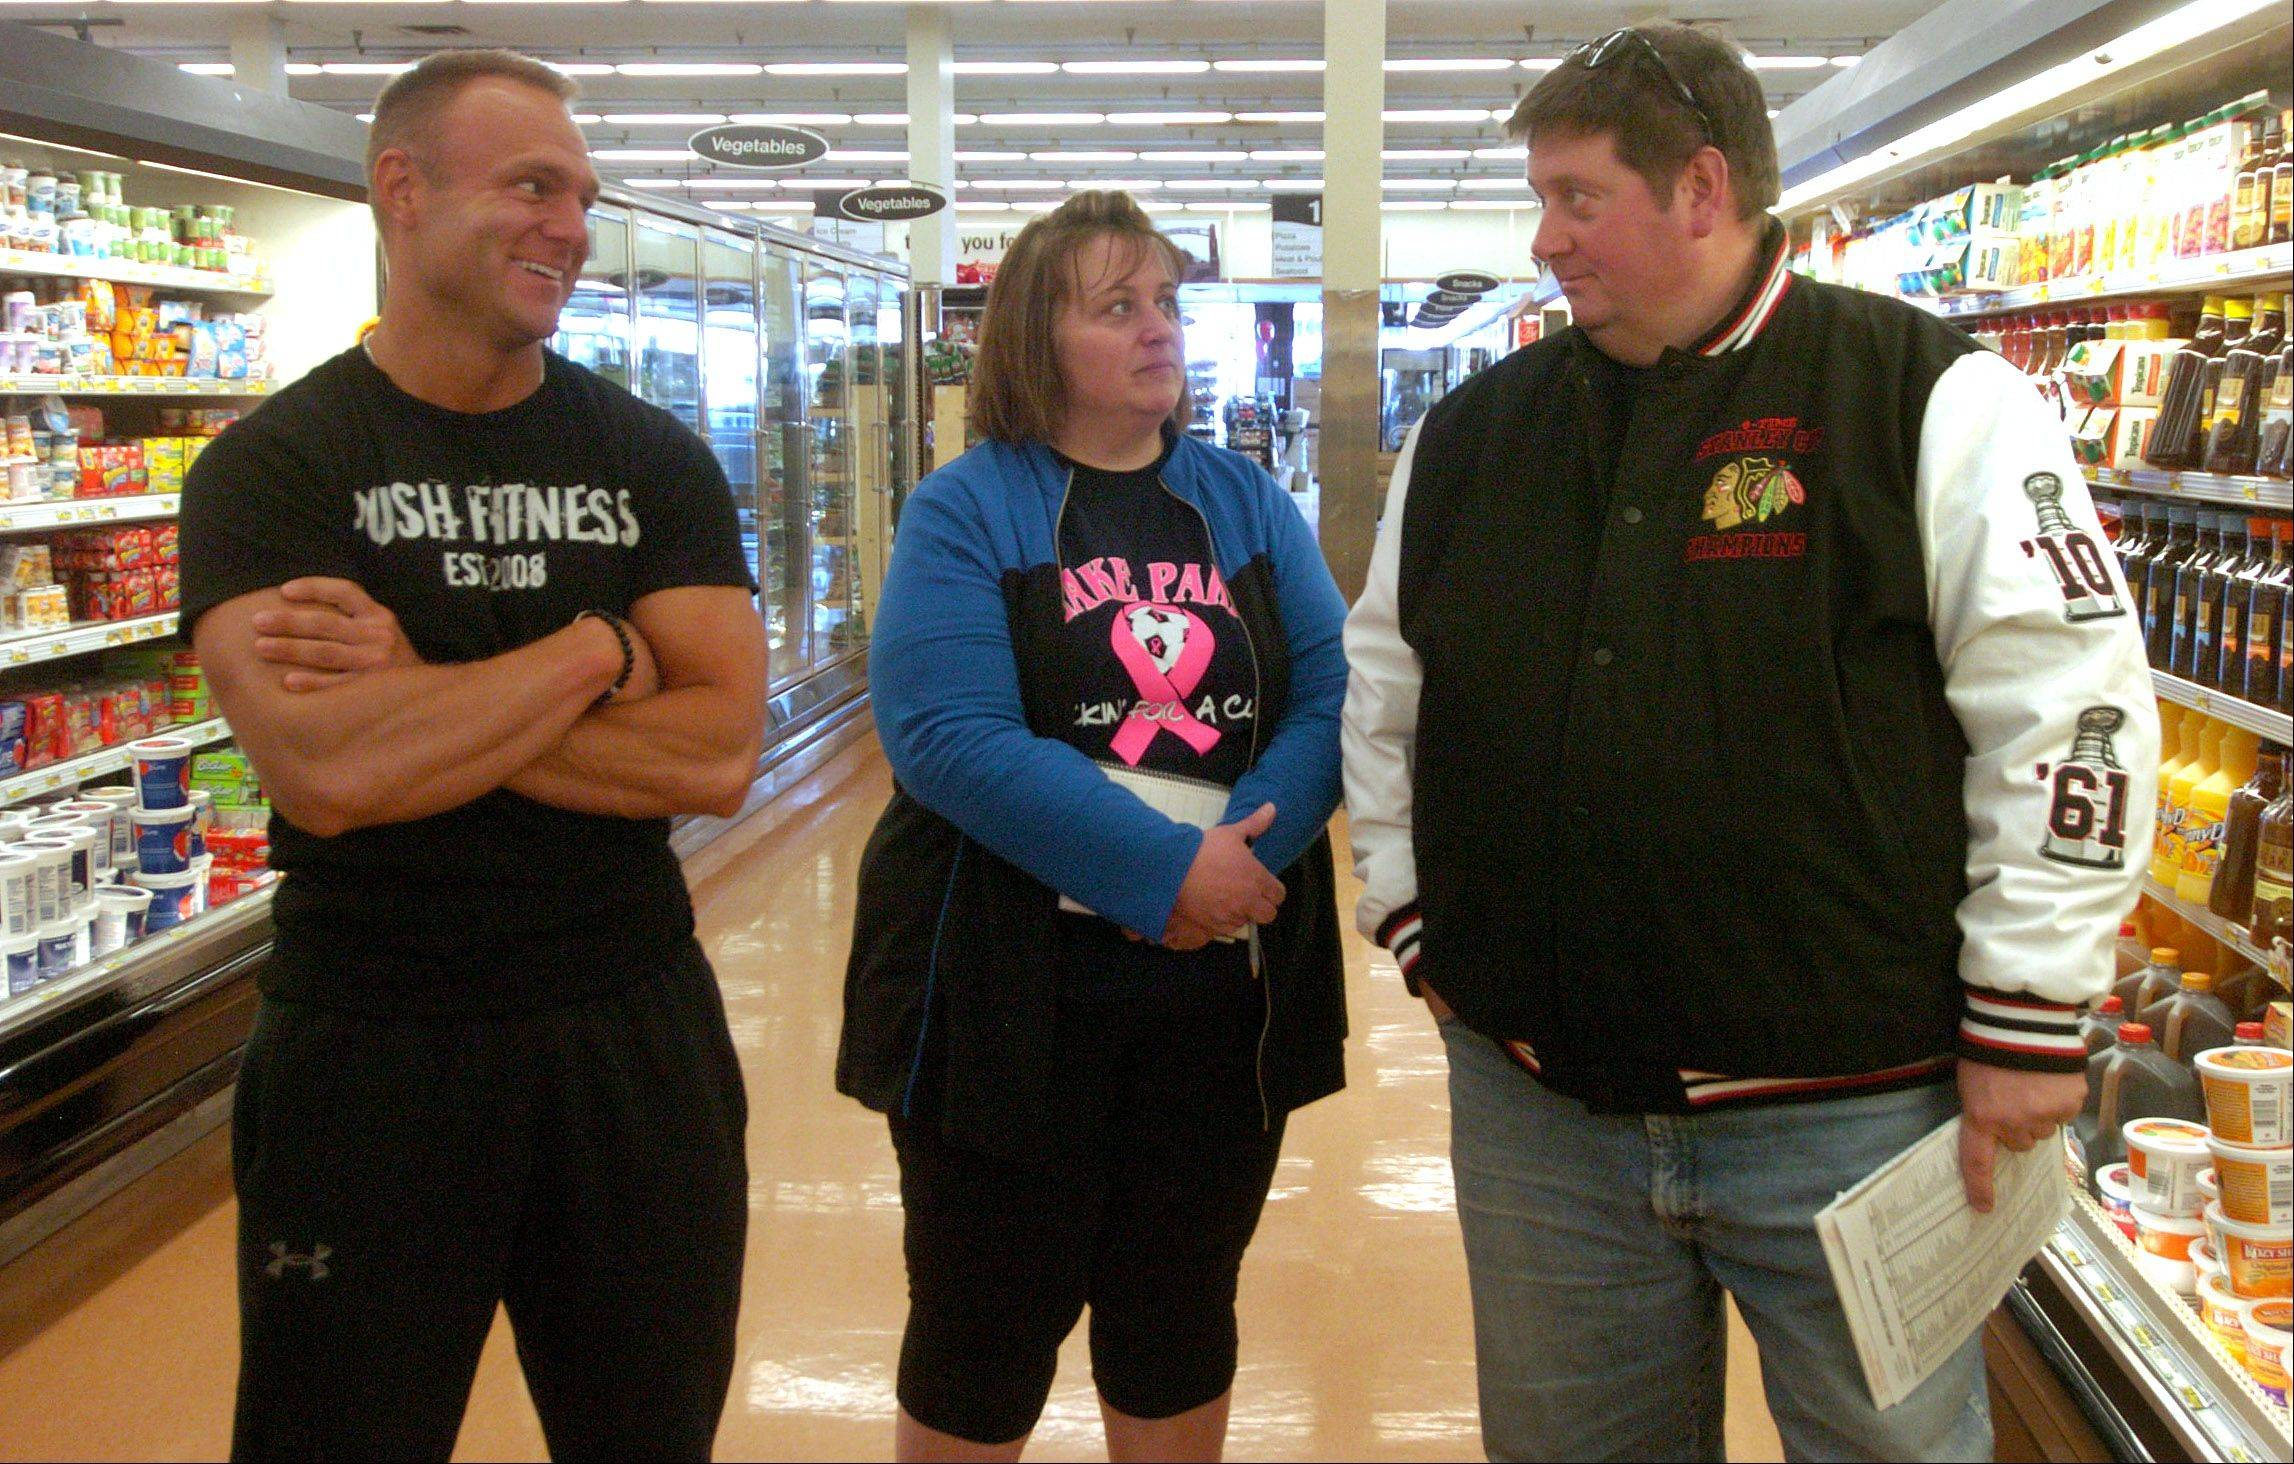 Push Fitness trainer Mark Trapp offers advice to Fittest Loser contestants while shopping for healthy choices at Jewel.